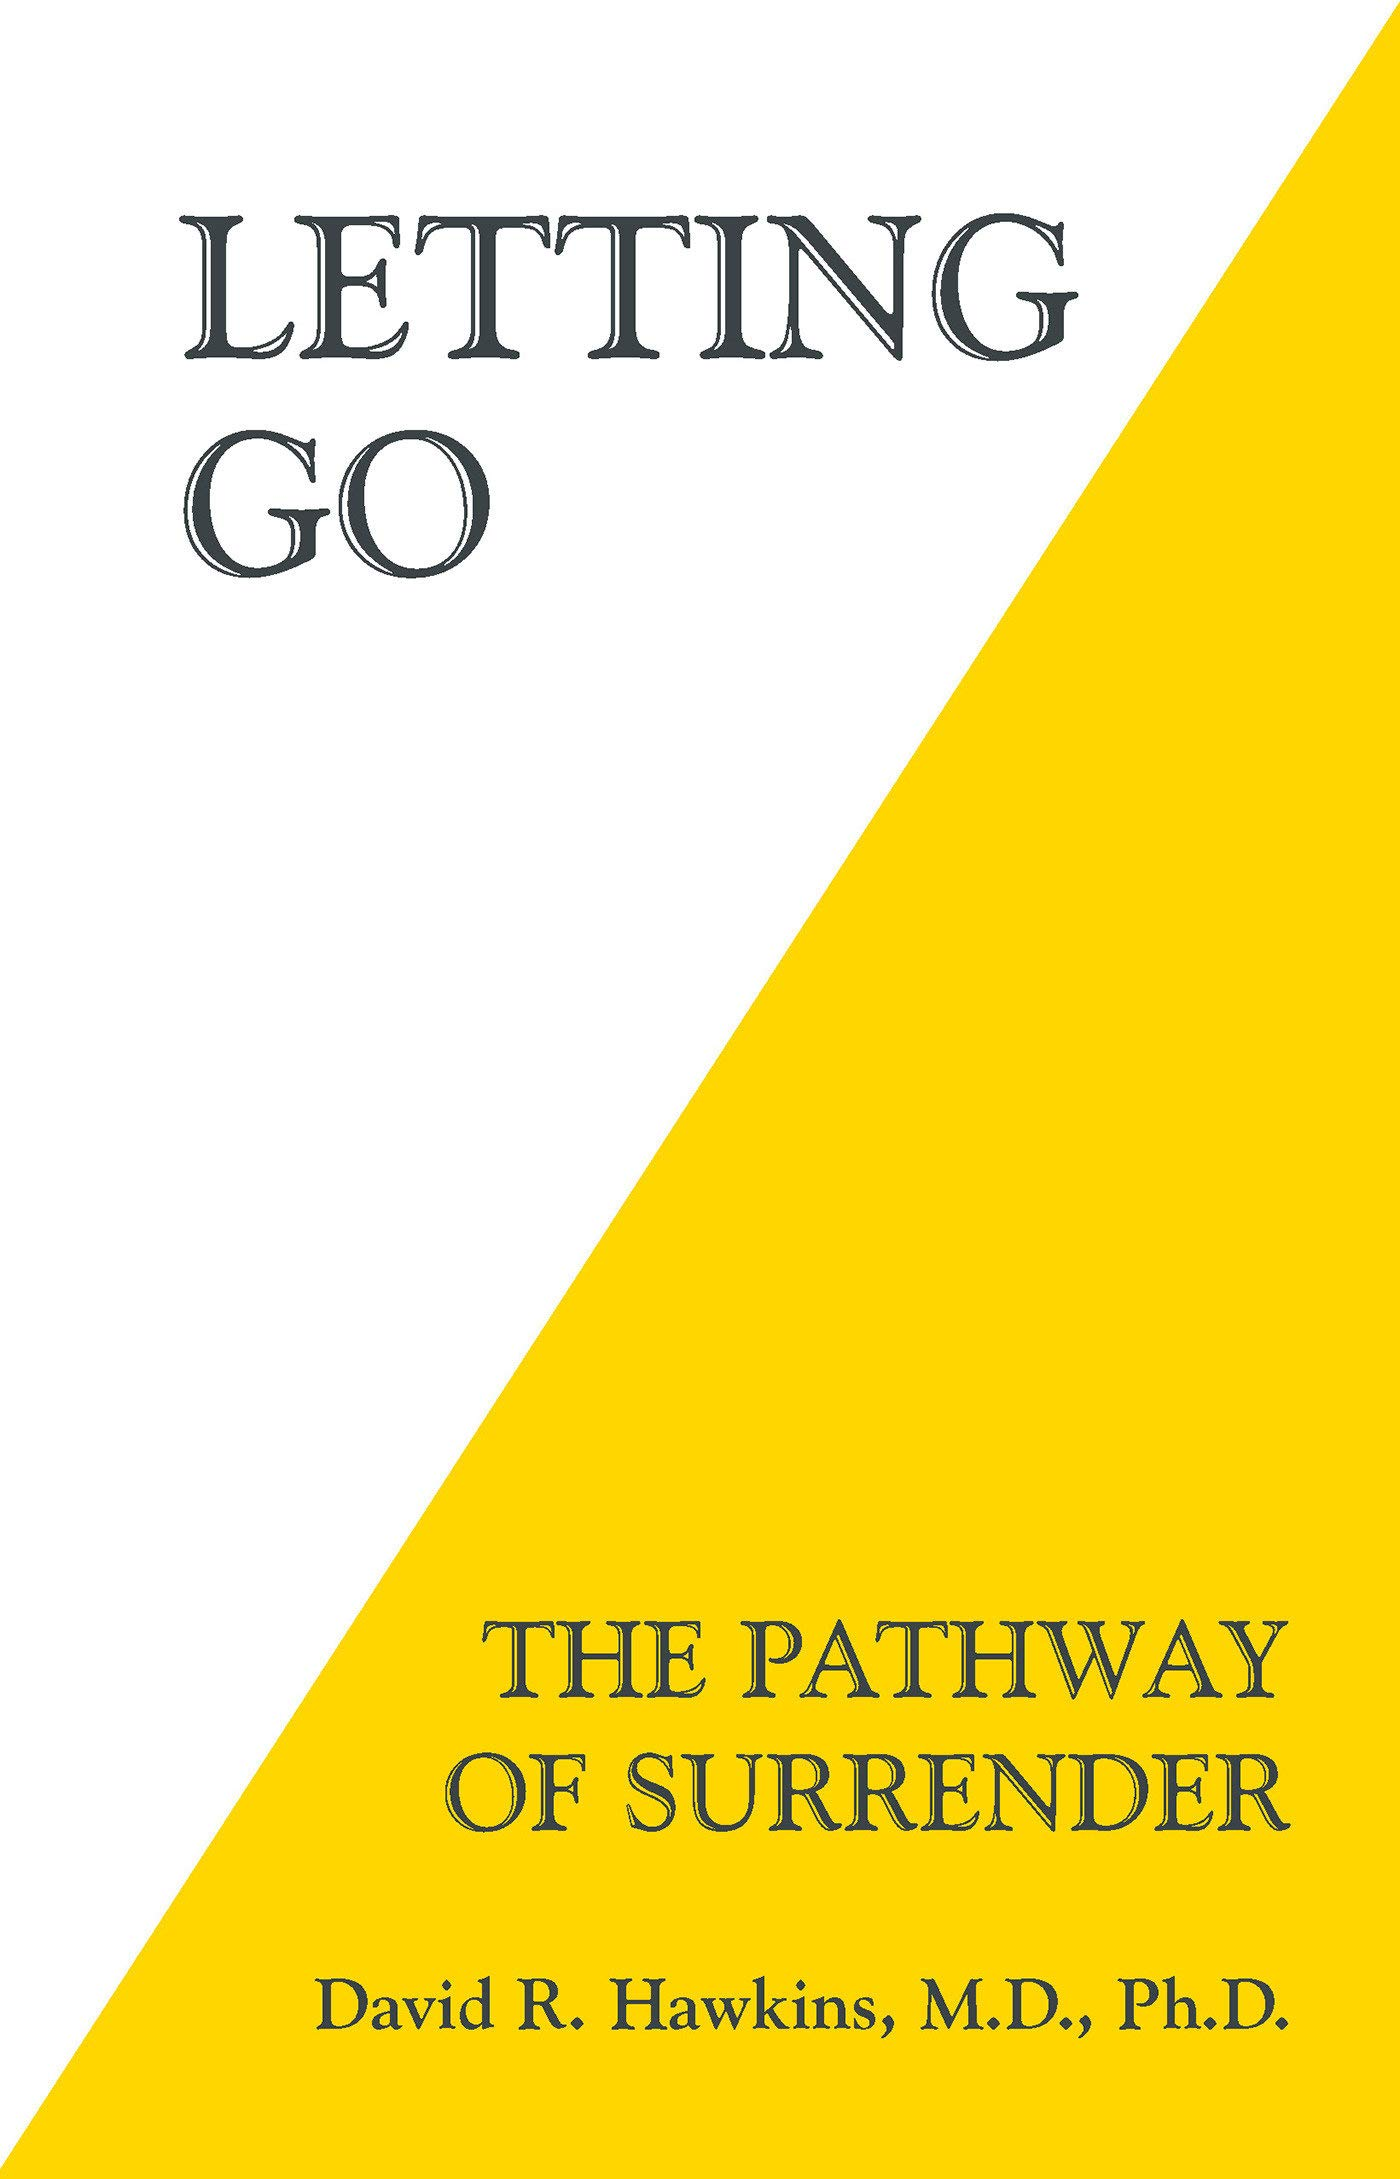 - If you would like to look further into this concept I would highly recommend the book Letting Go by David R. Hawkins.